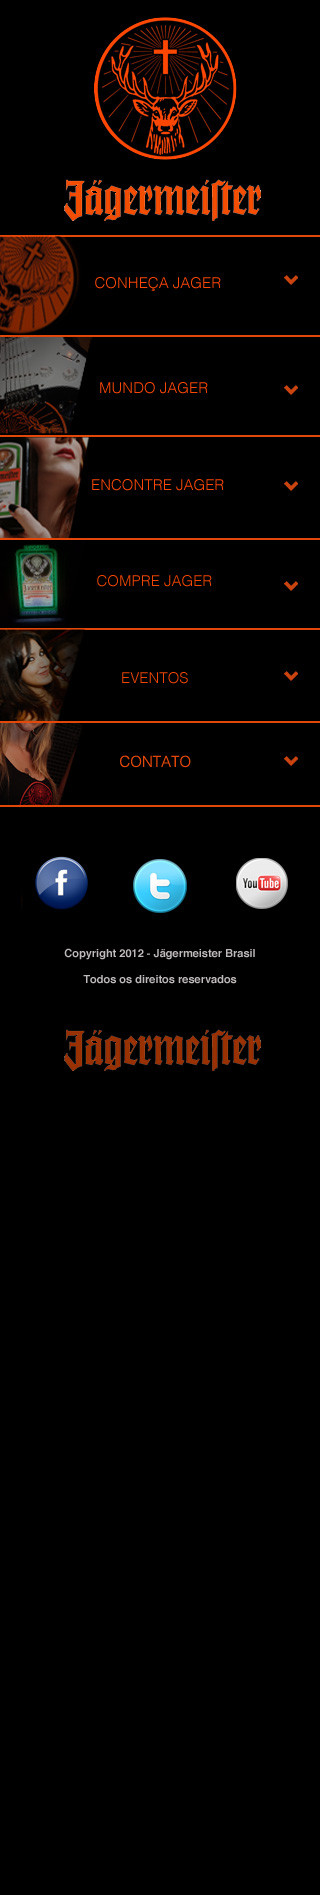 Jagermeister Mobile Layout by wishmask